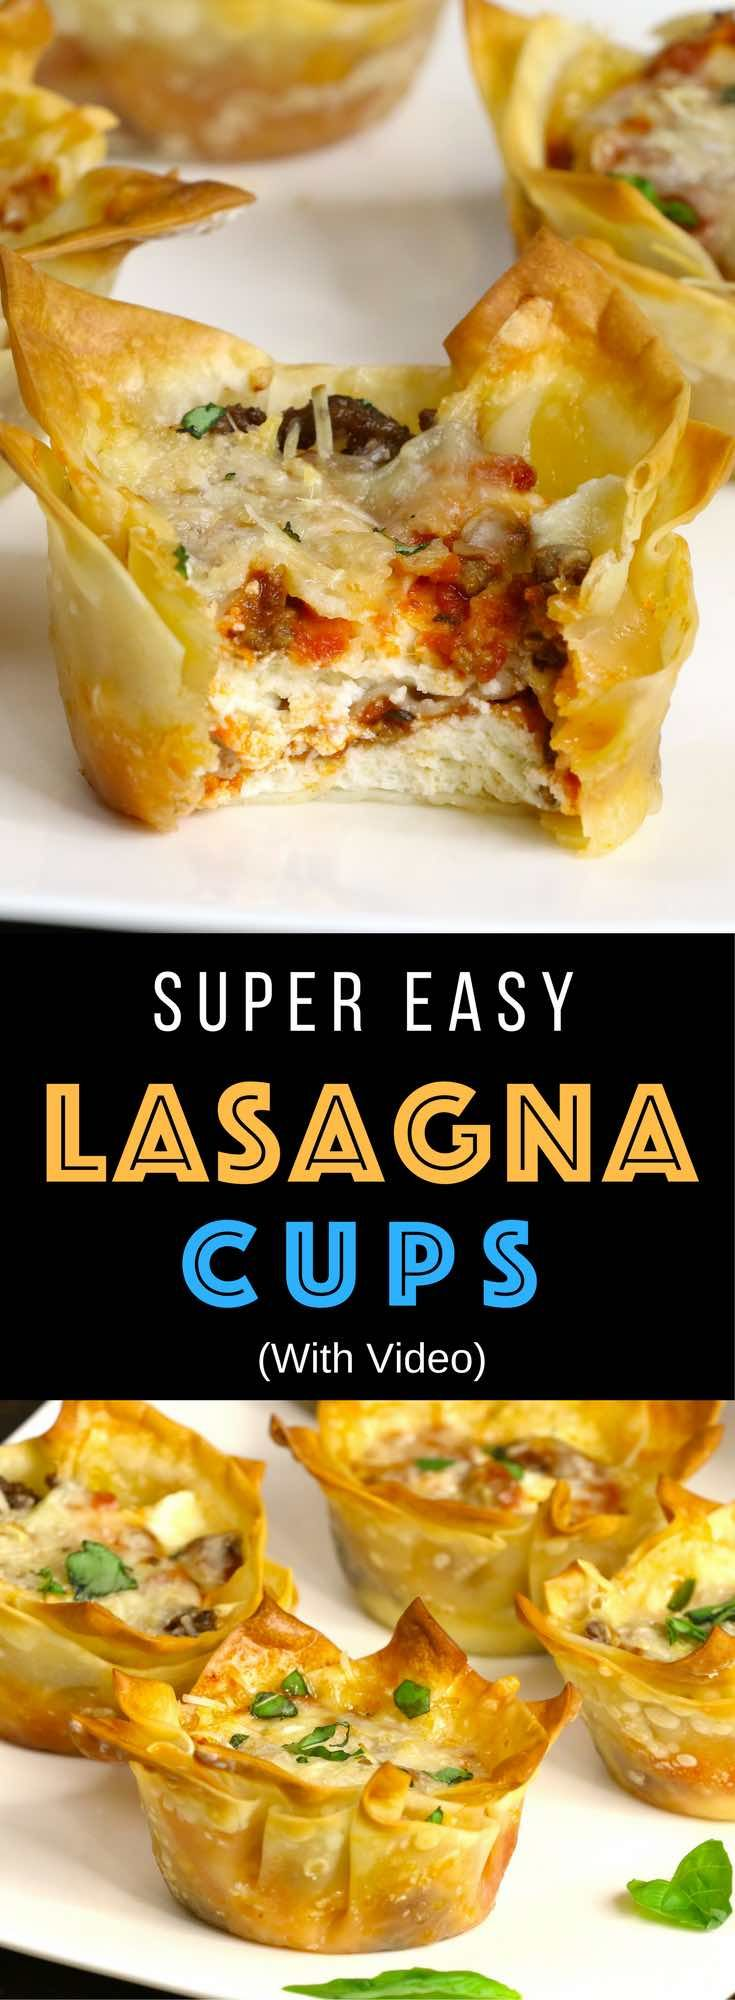 Mini Lasagna Cups: warm, crispy and cheesy handheld lasagna! Cooked ground beef, mozzarella, parmesan, ricotta, and pizza sauce baked inside of wonton wrappers in a muffin tin! The easiest lasagna you will ever make – the perfect snack, lunch or quick weeknight dinner! Quick and easy recipe. Party food, easy dinner. Video recipe. | Tipbuzz.com